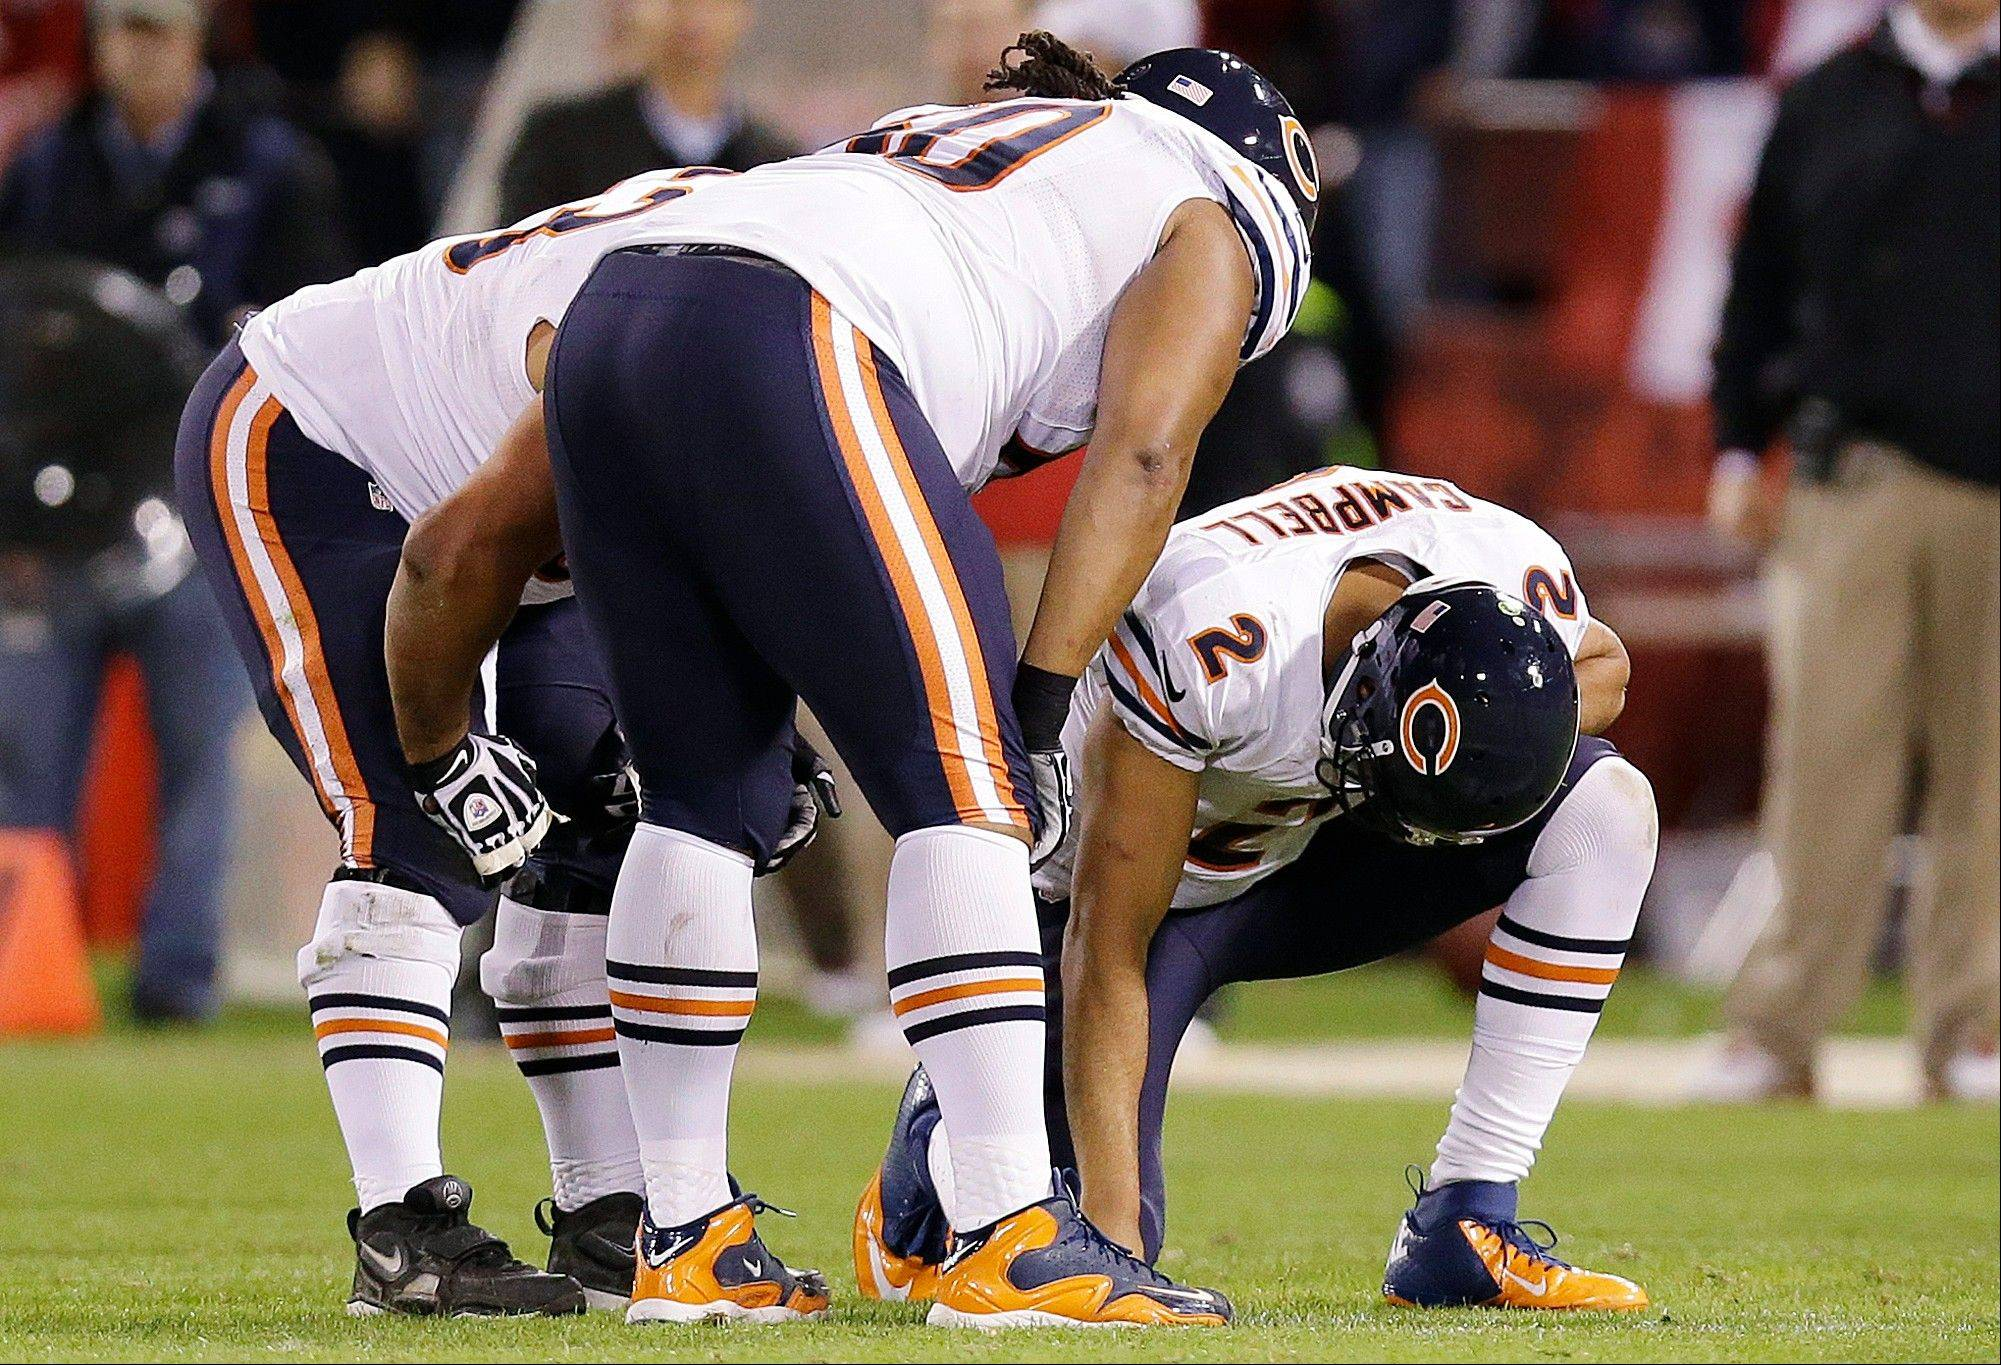 Bears quarterback Jason Campbell got that rundown feeling in Monday night�s 32-7 loss at San Francisco, the 49ers finishing with 6 sacks.